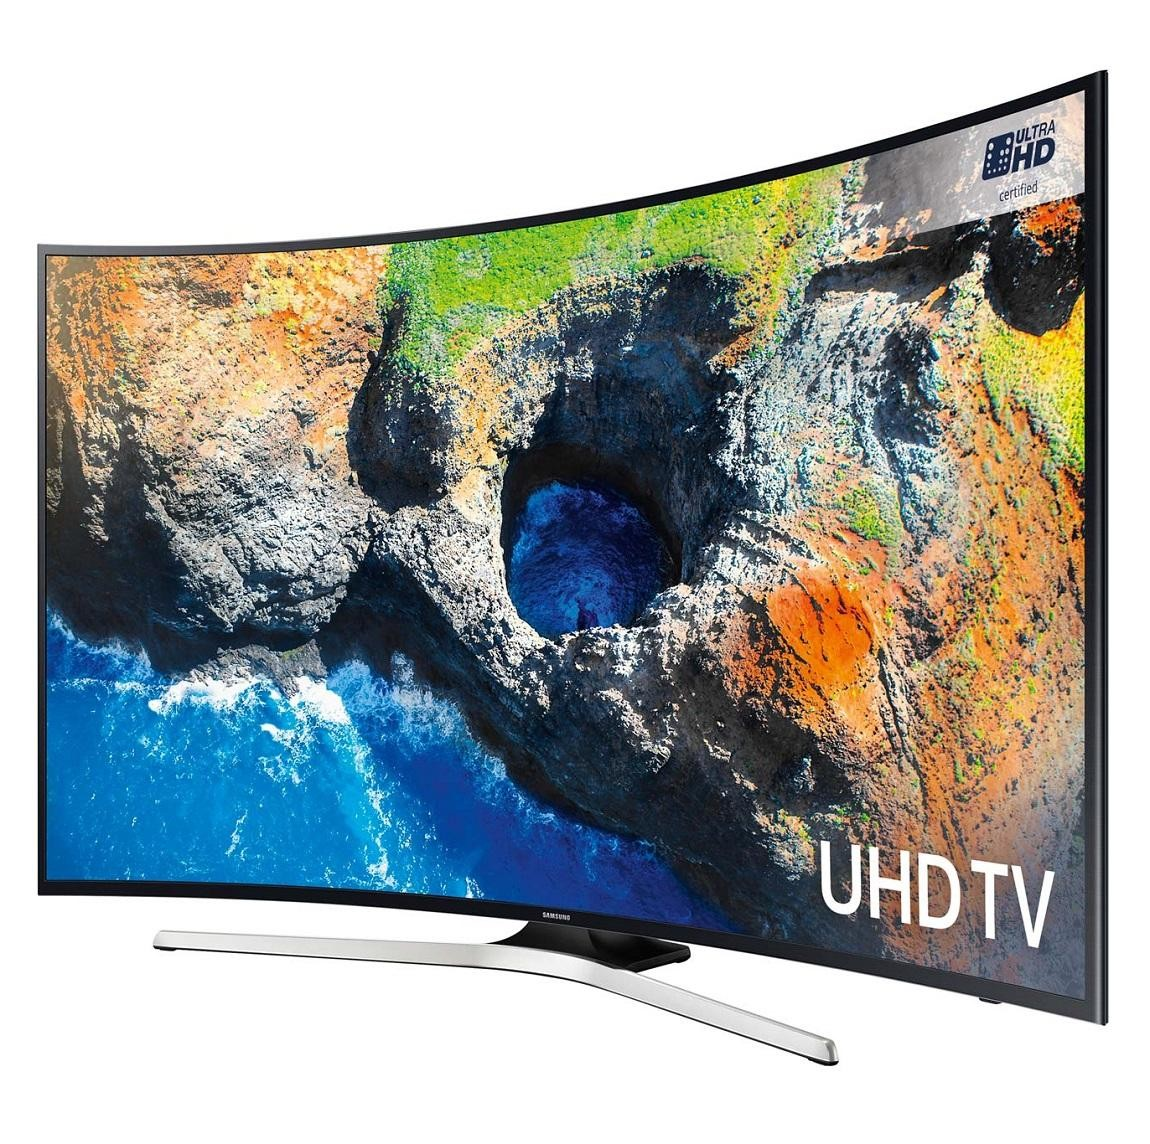 Samsung UE49MU6220 49 Inch Curved SMART 4K Ultra HD HDR